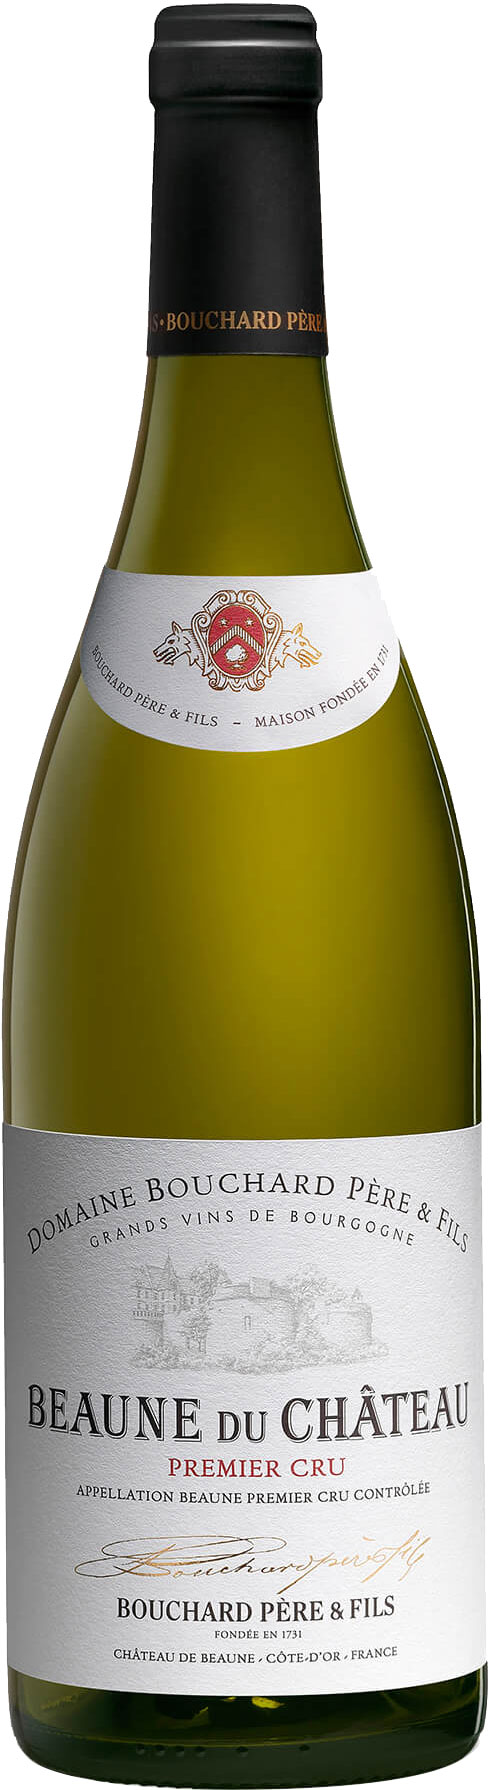 Bouchard Pere & Fils - Beaune du Chateau 1er Cru Blanc 2016 75cl Bottle